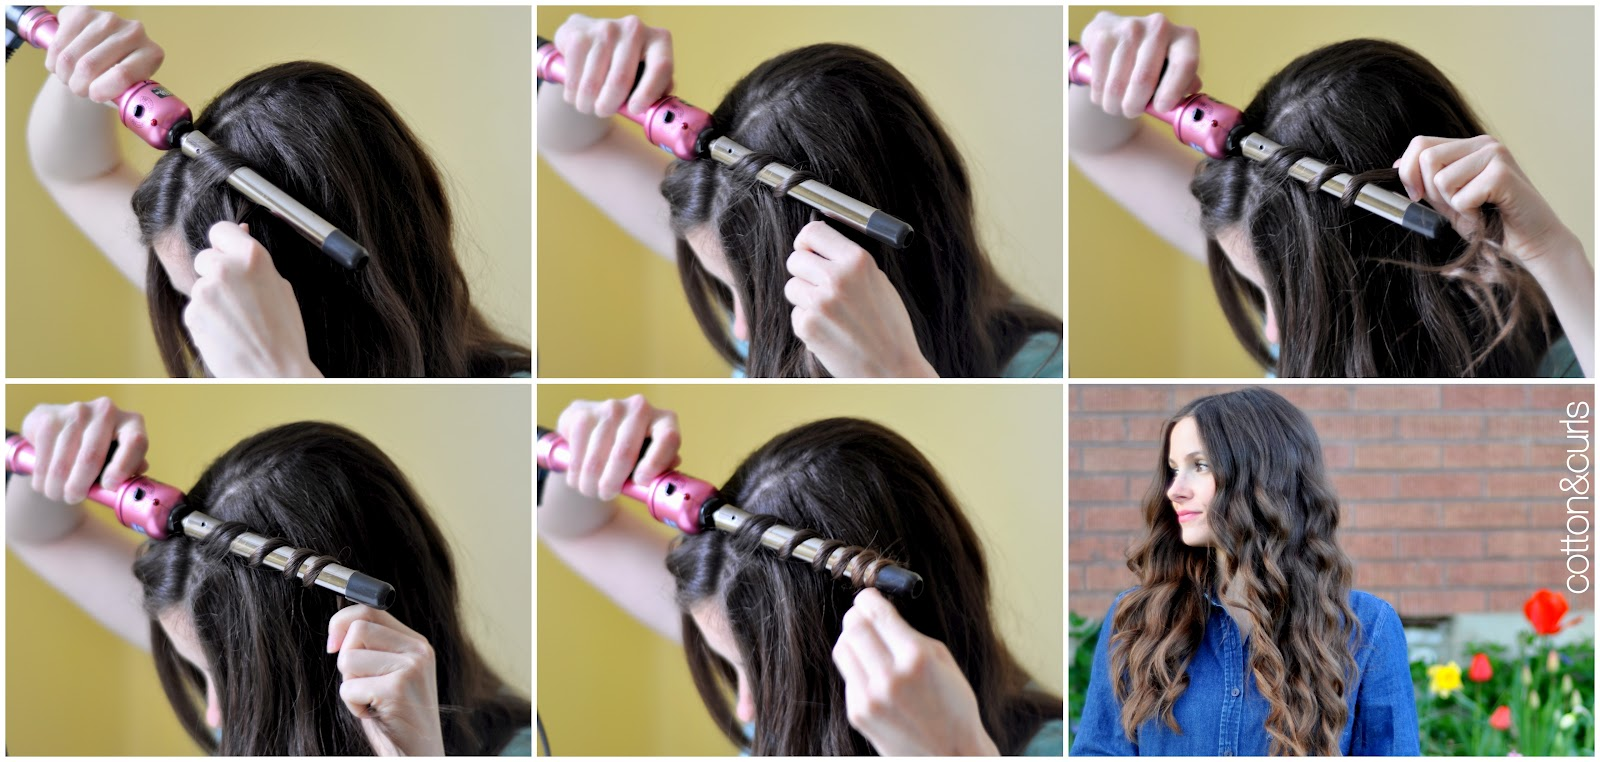 Spiral curls hair tutorial – for long or short hair!